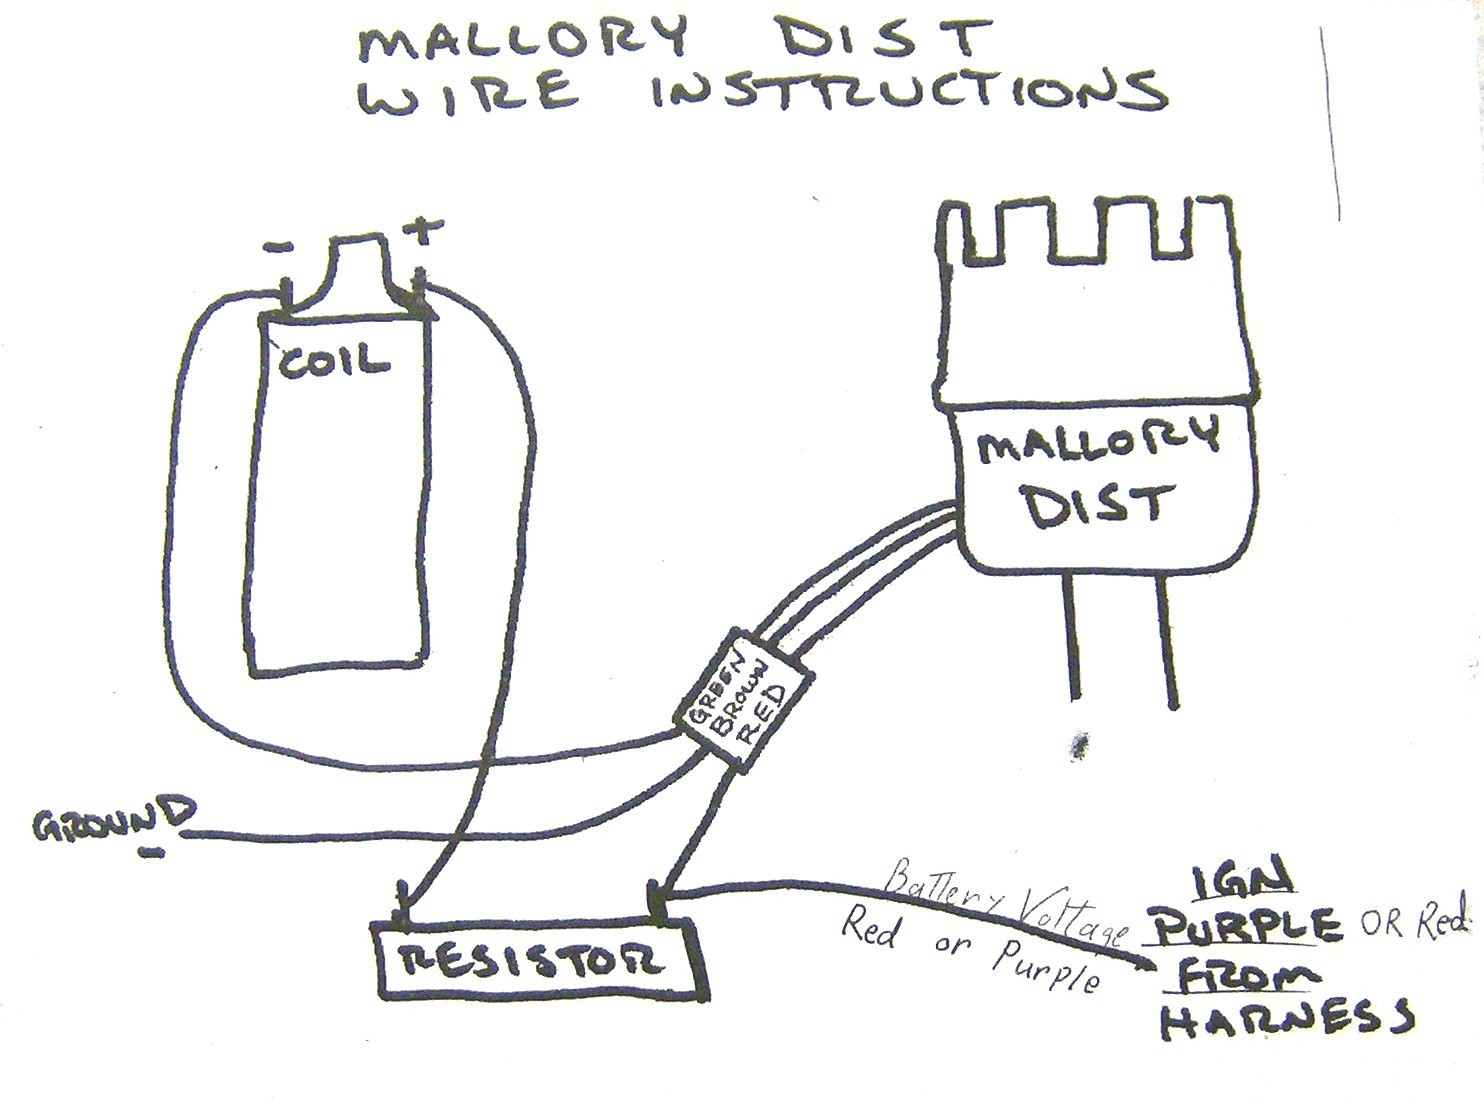 mallory ignition wiring diagram elegant wiring diagram mallory unilite inside ignition deltagenerali me at of mallory ignition wiring diagram mallory ignition wiring diagram wiring diagram image